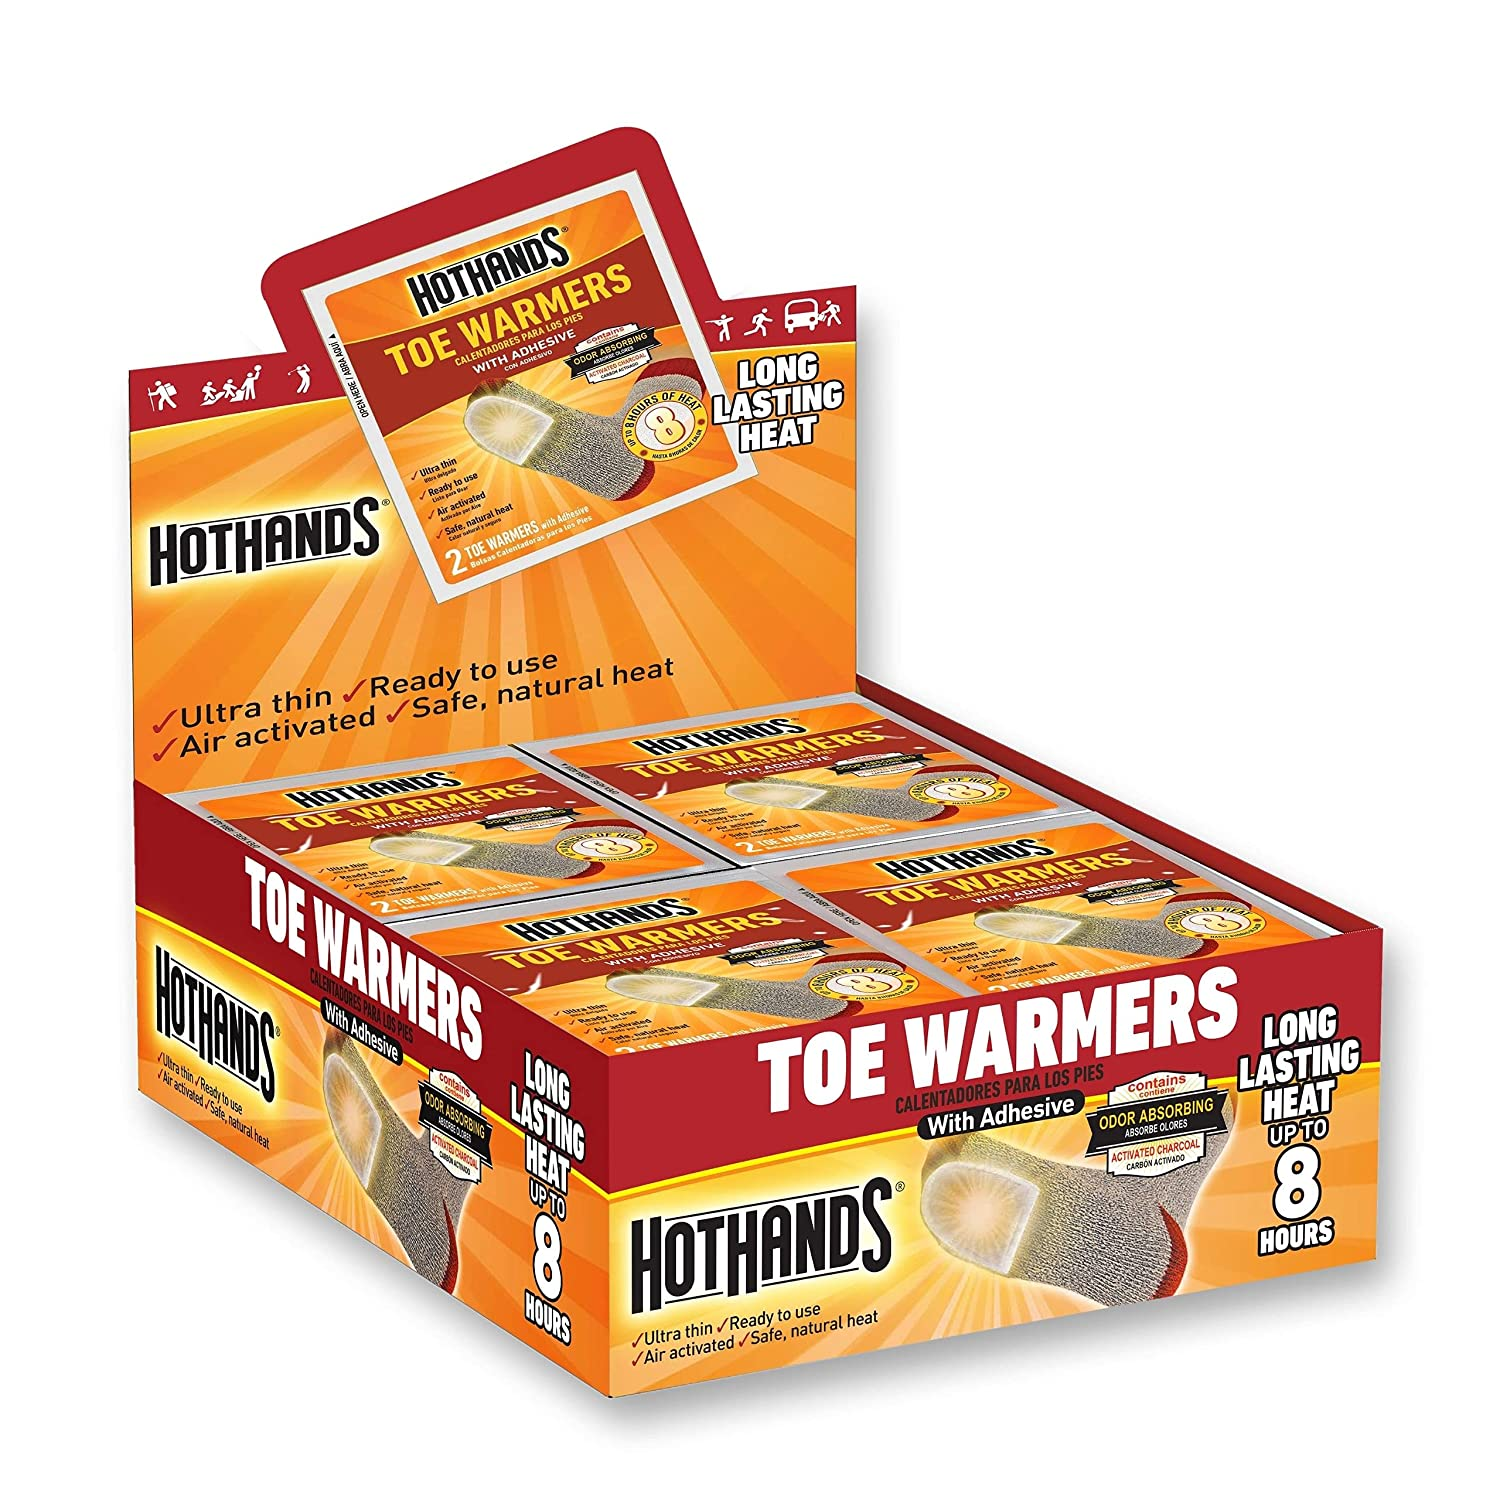 HotHands Toe Warmers 40